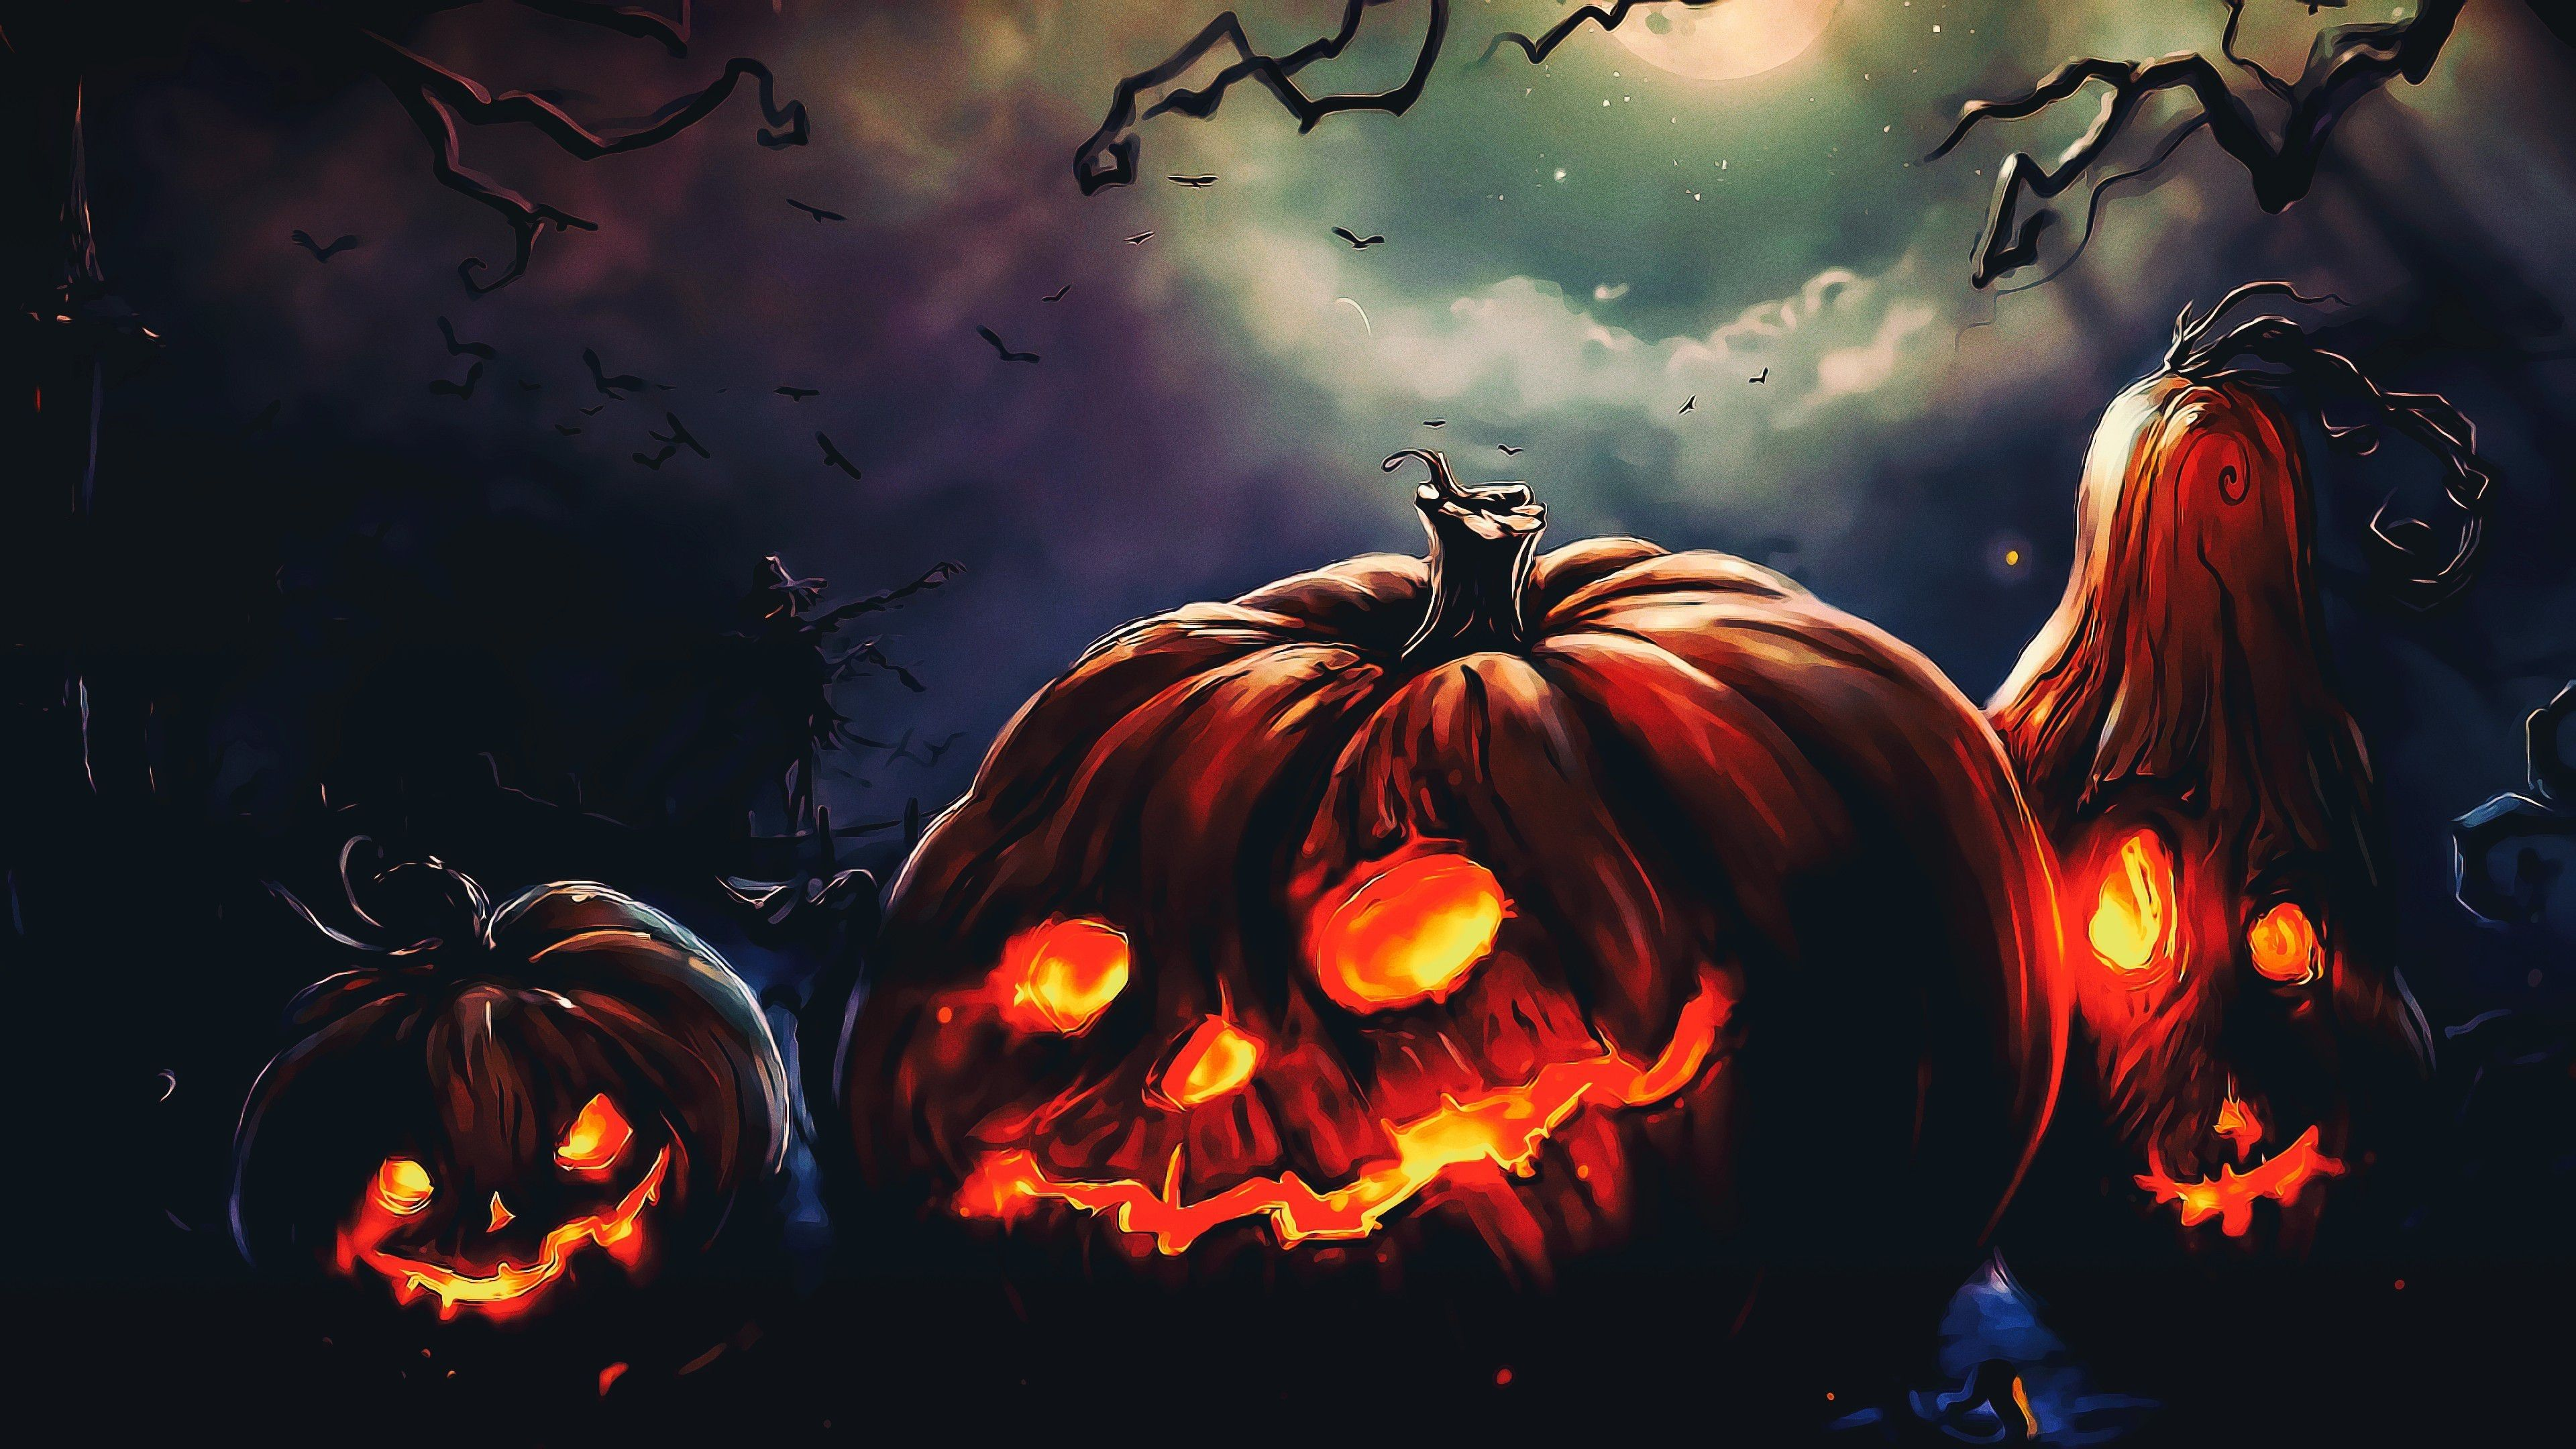 2018 Halloween Wallpaper And Photos 4k Full Hd Halloween